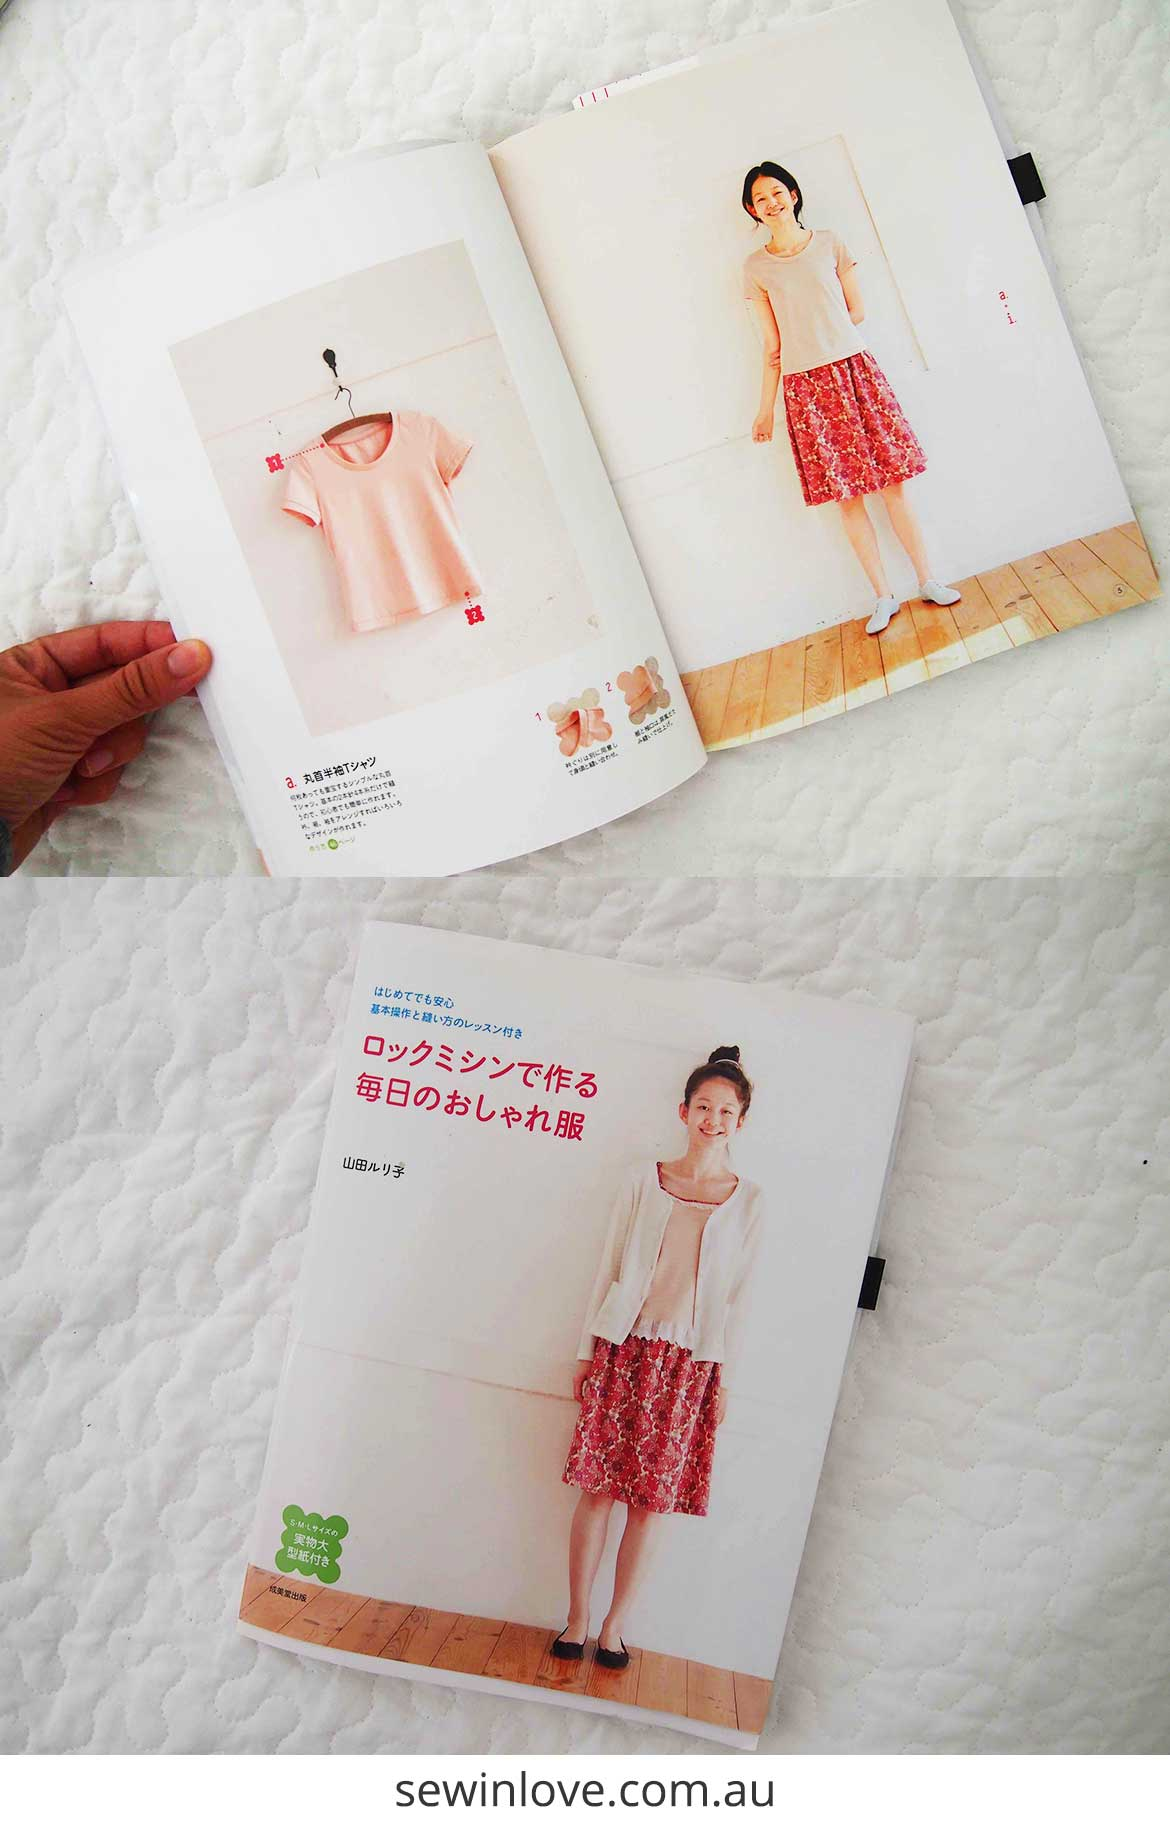 T Shirt Sewing Pattern | This Japanese sewing pattern book is dedicated to garments made using a serger. I made this tee in just a few hours because it's all done on the serger! Can't wait to make more tops using this t shirt pattern.